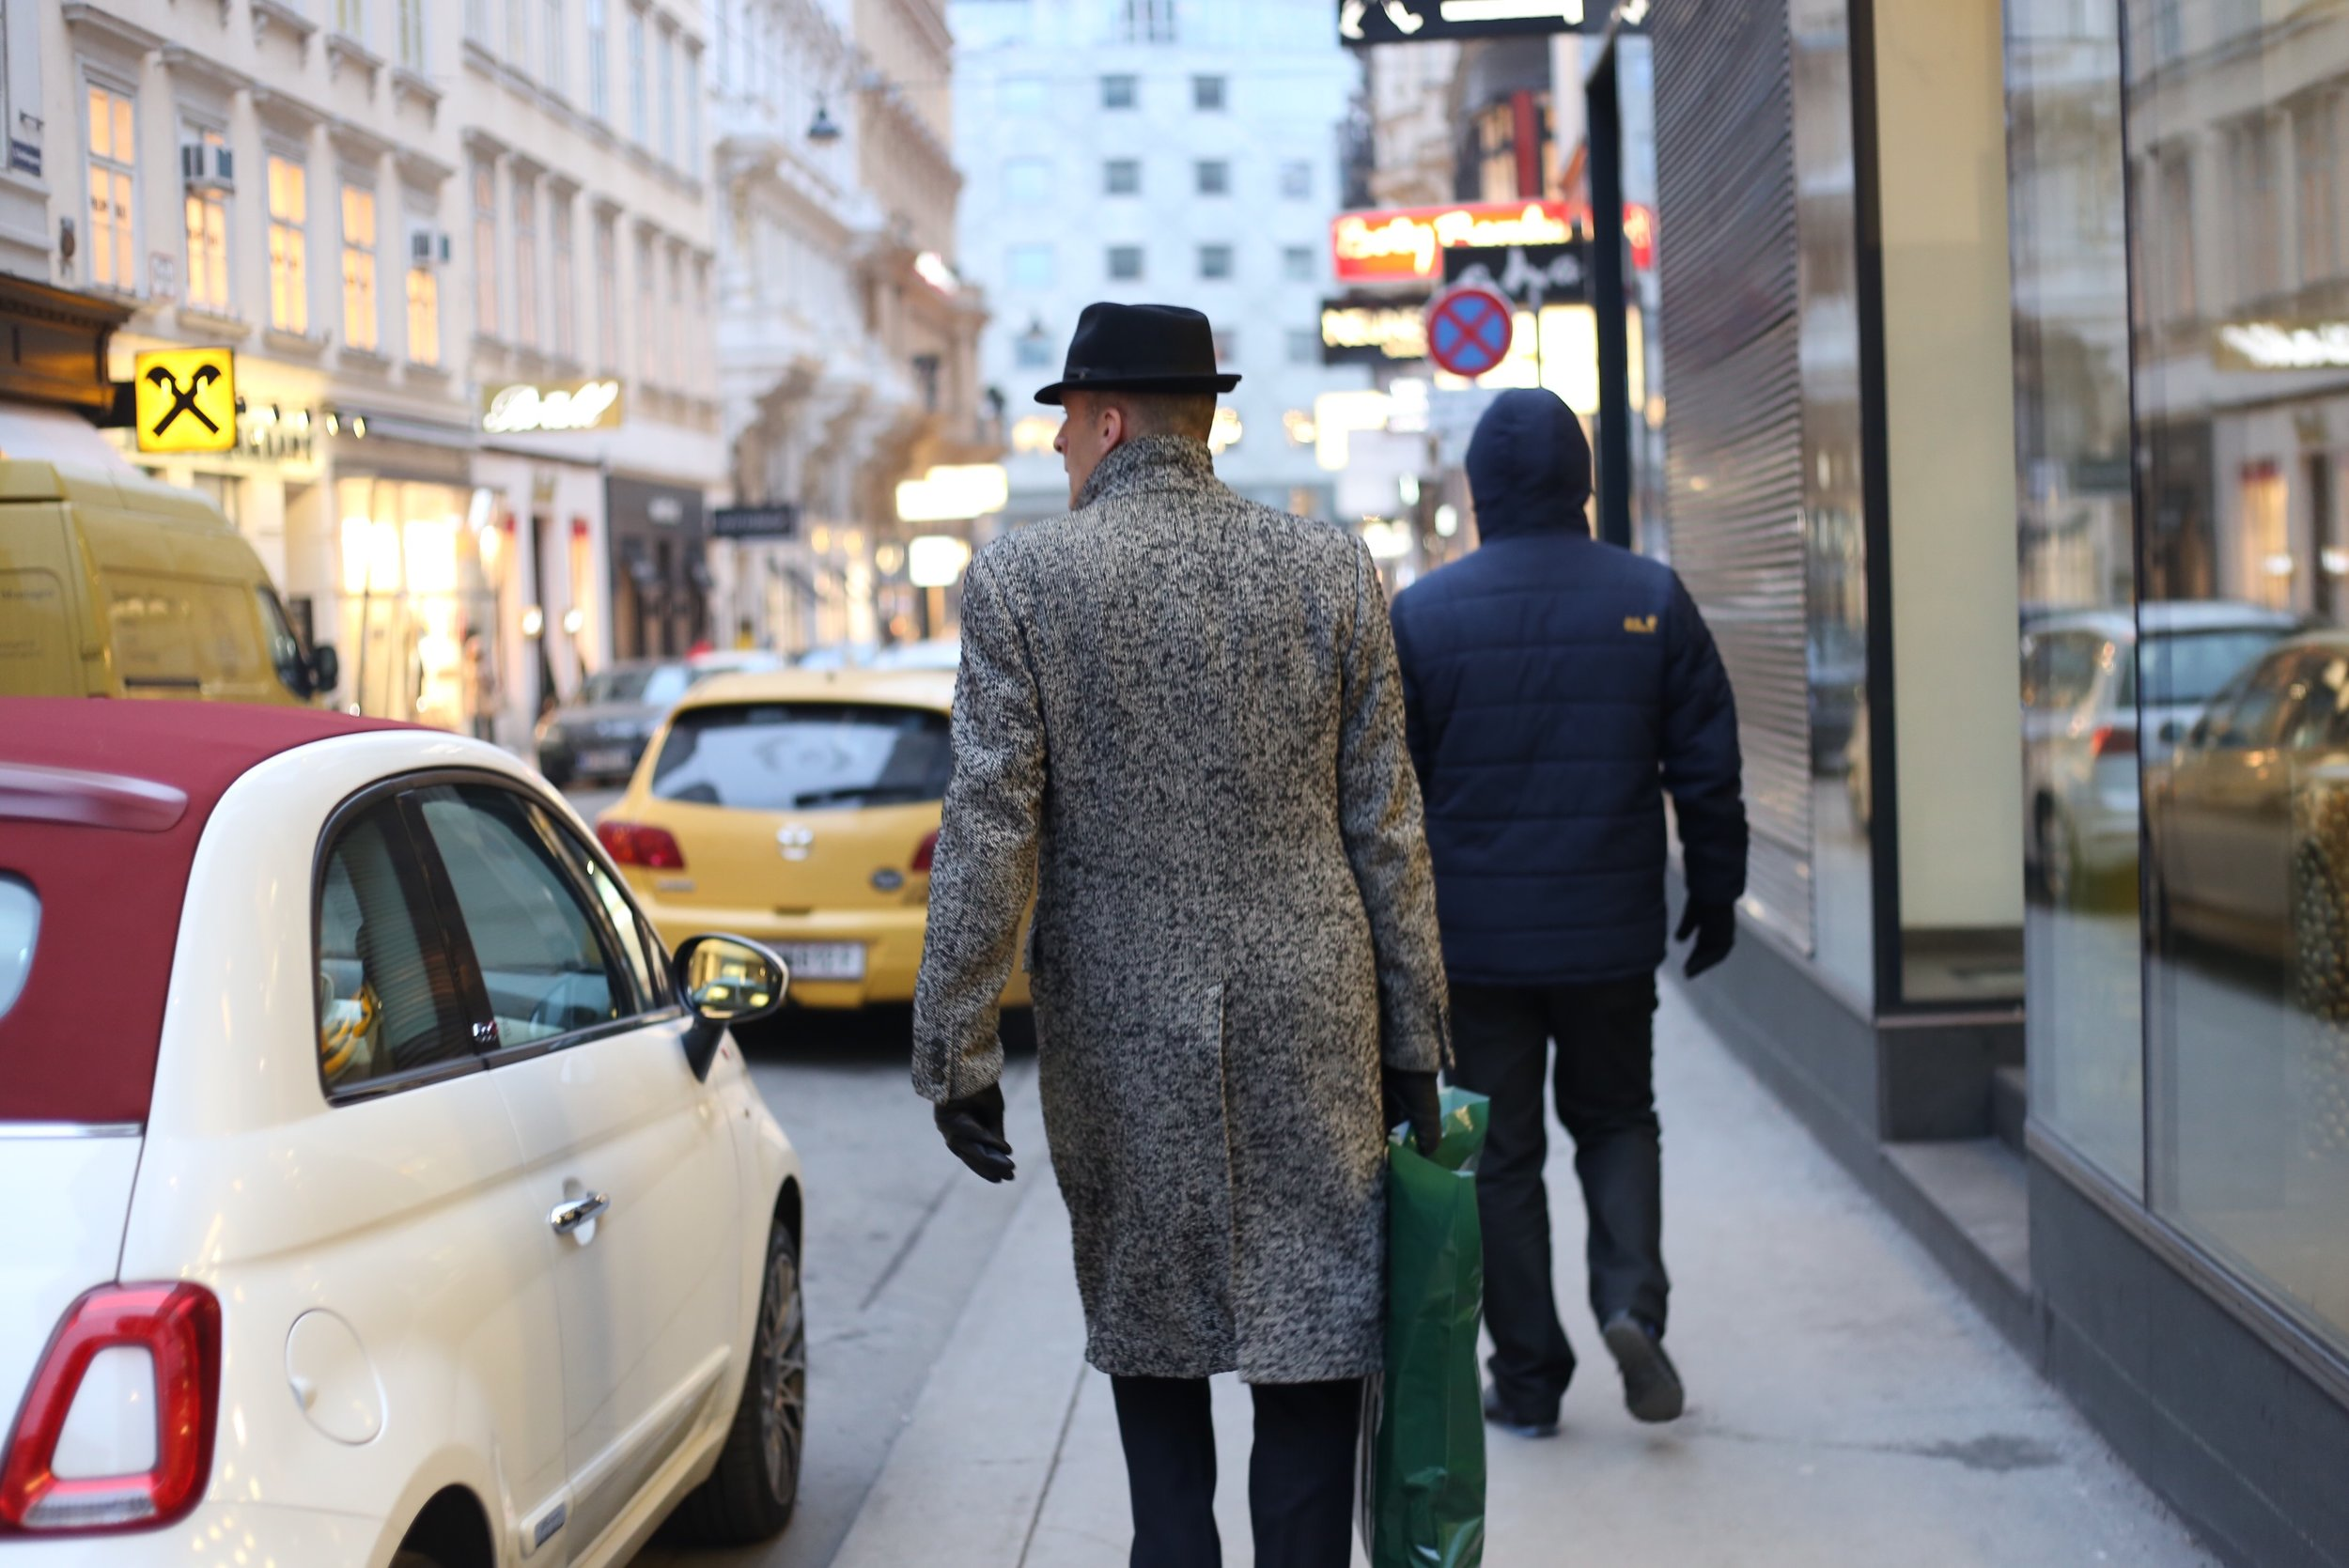 Man in a tweed coat and hat.